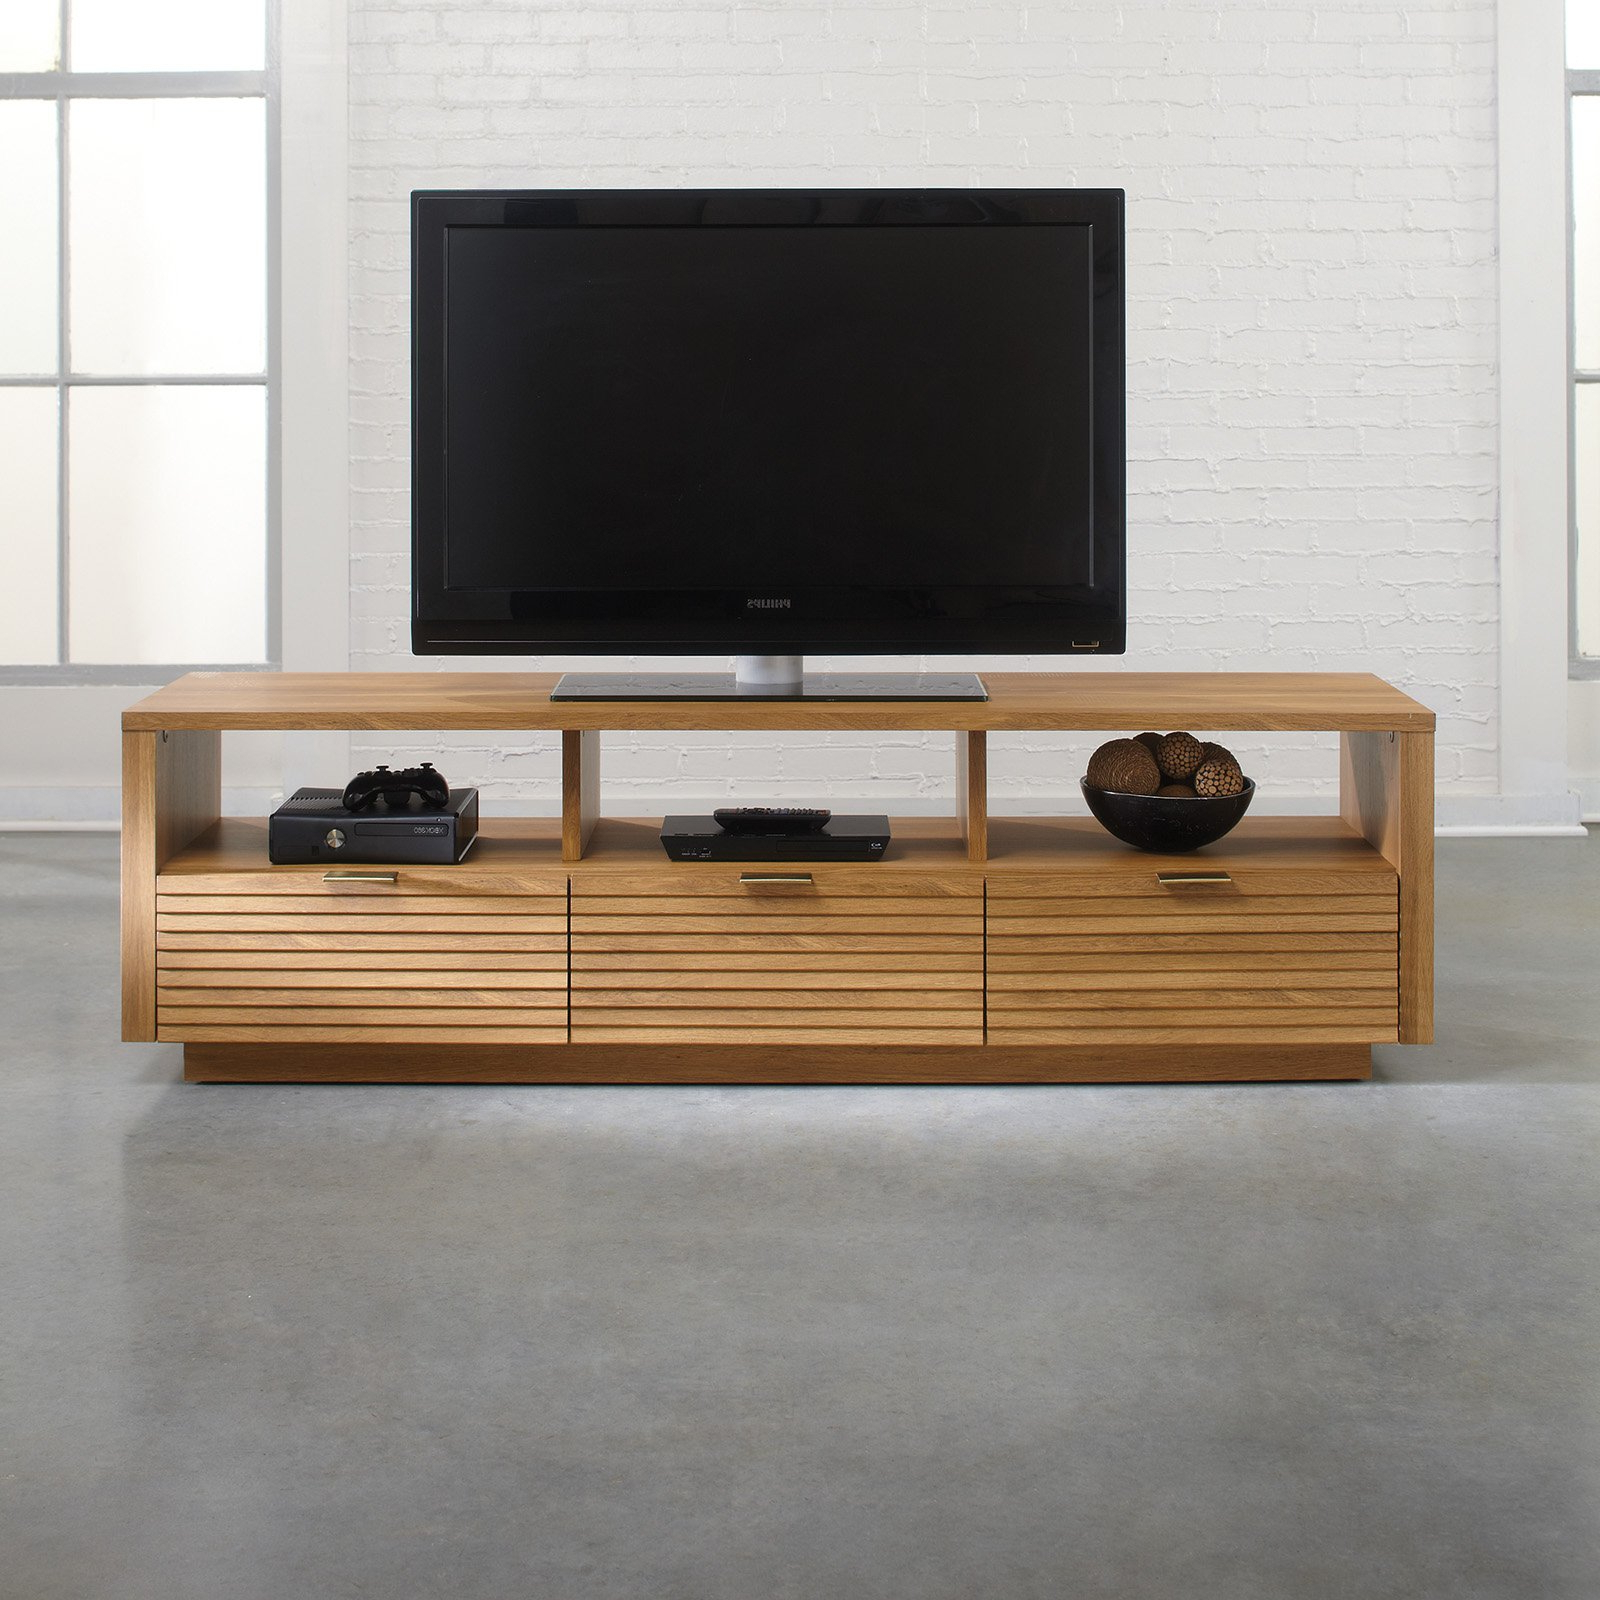 Widely Used Contemporary Wood Tv Stands In Tv Stand Designs Furniture White Walmart Modern Stands Ikea Corner (View 20 of 20)